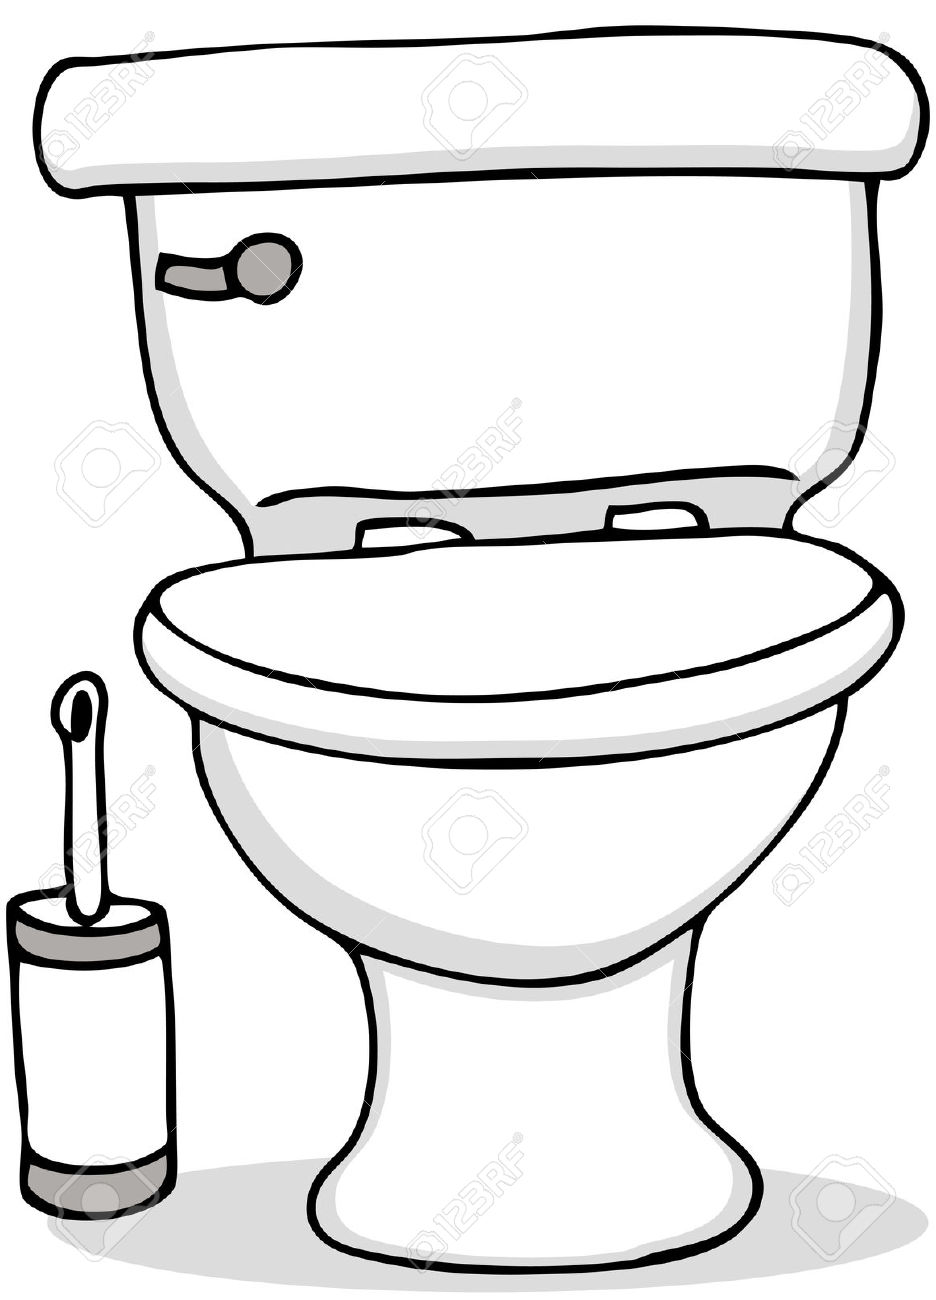 Toilet clipart animated #3